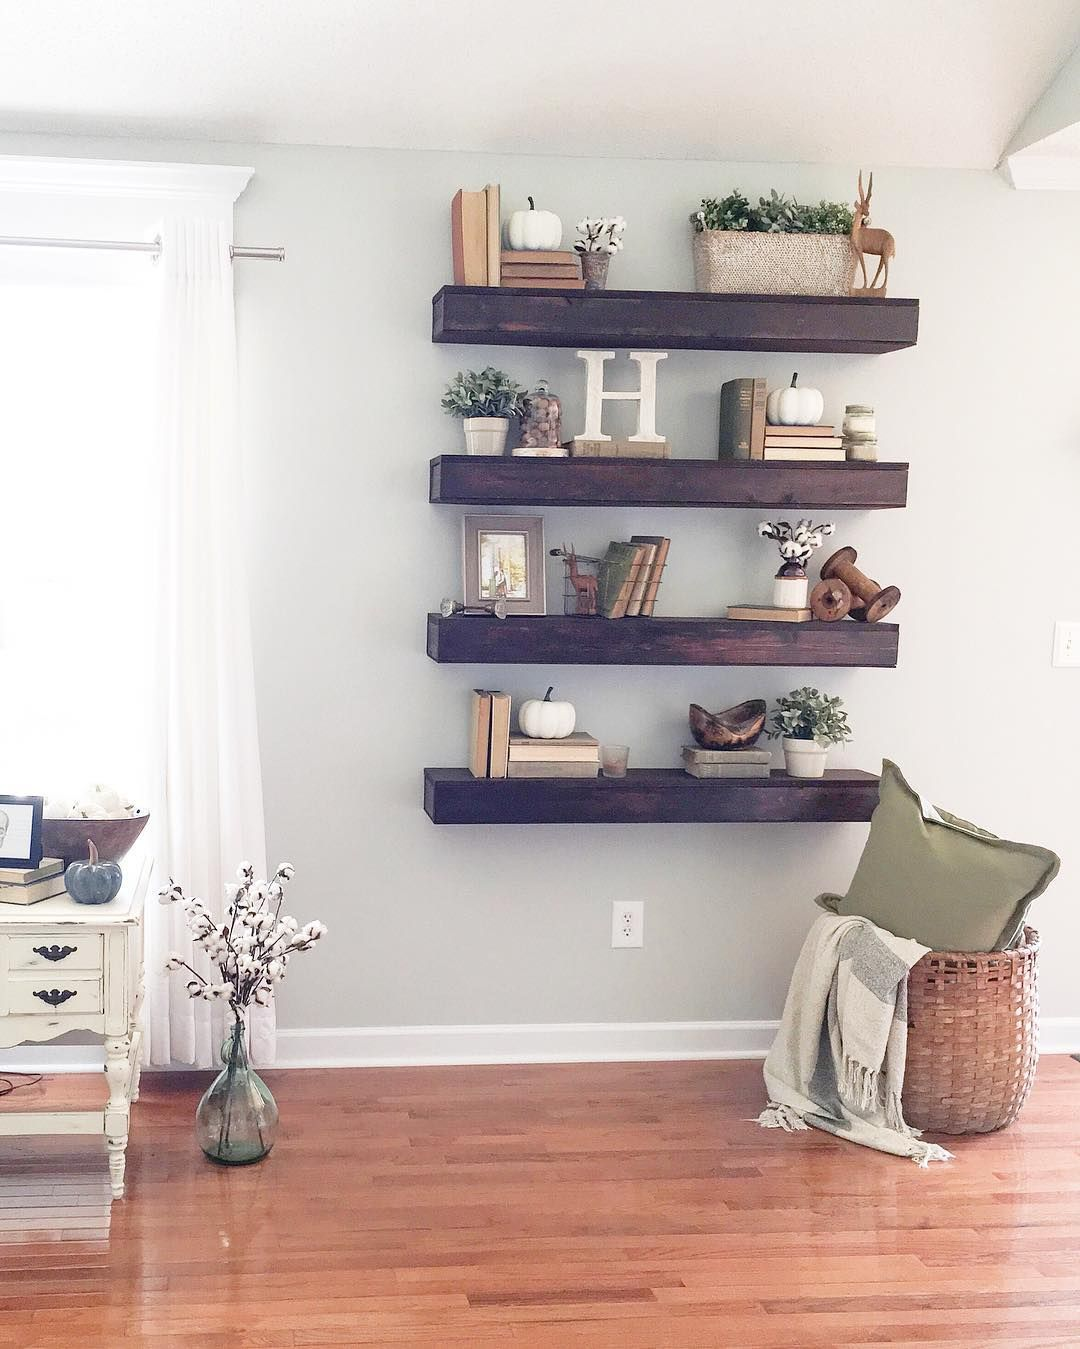 Living Room Wall Shelf Floating Shelves  My Home  Pinterest  Shelves Decorating And